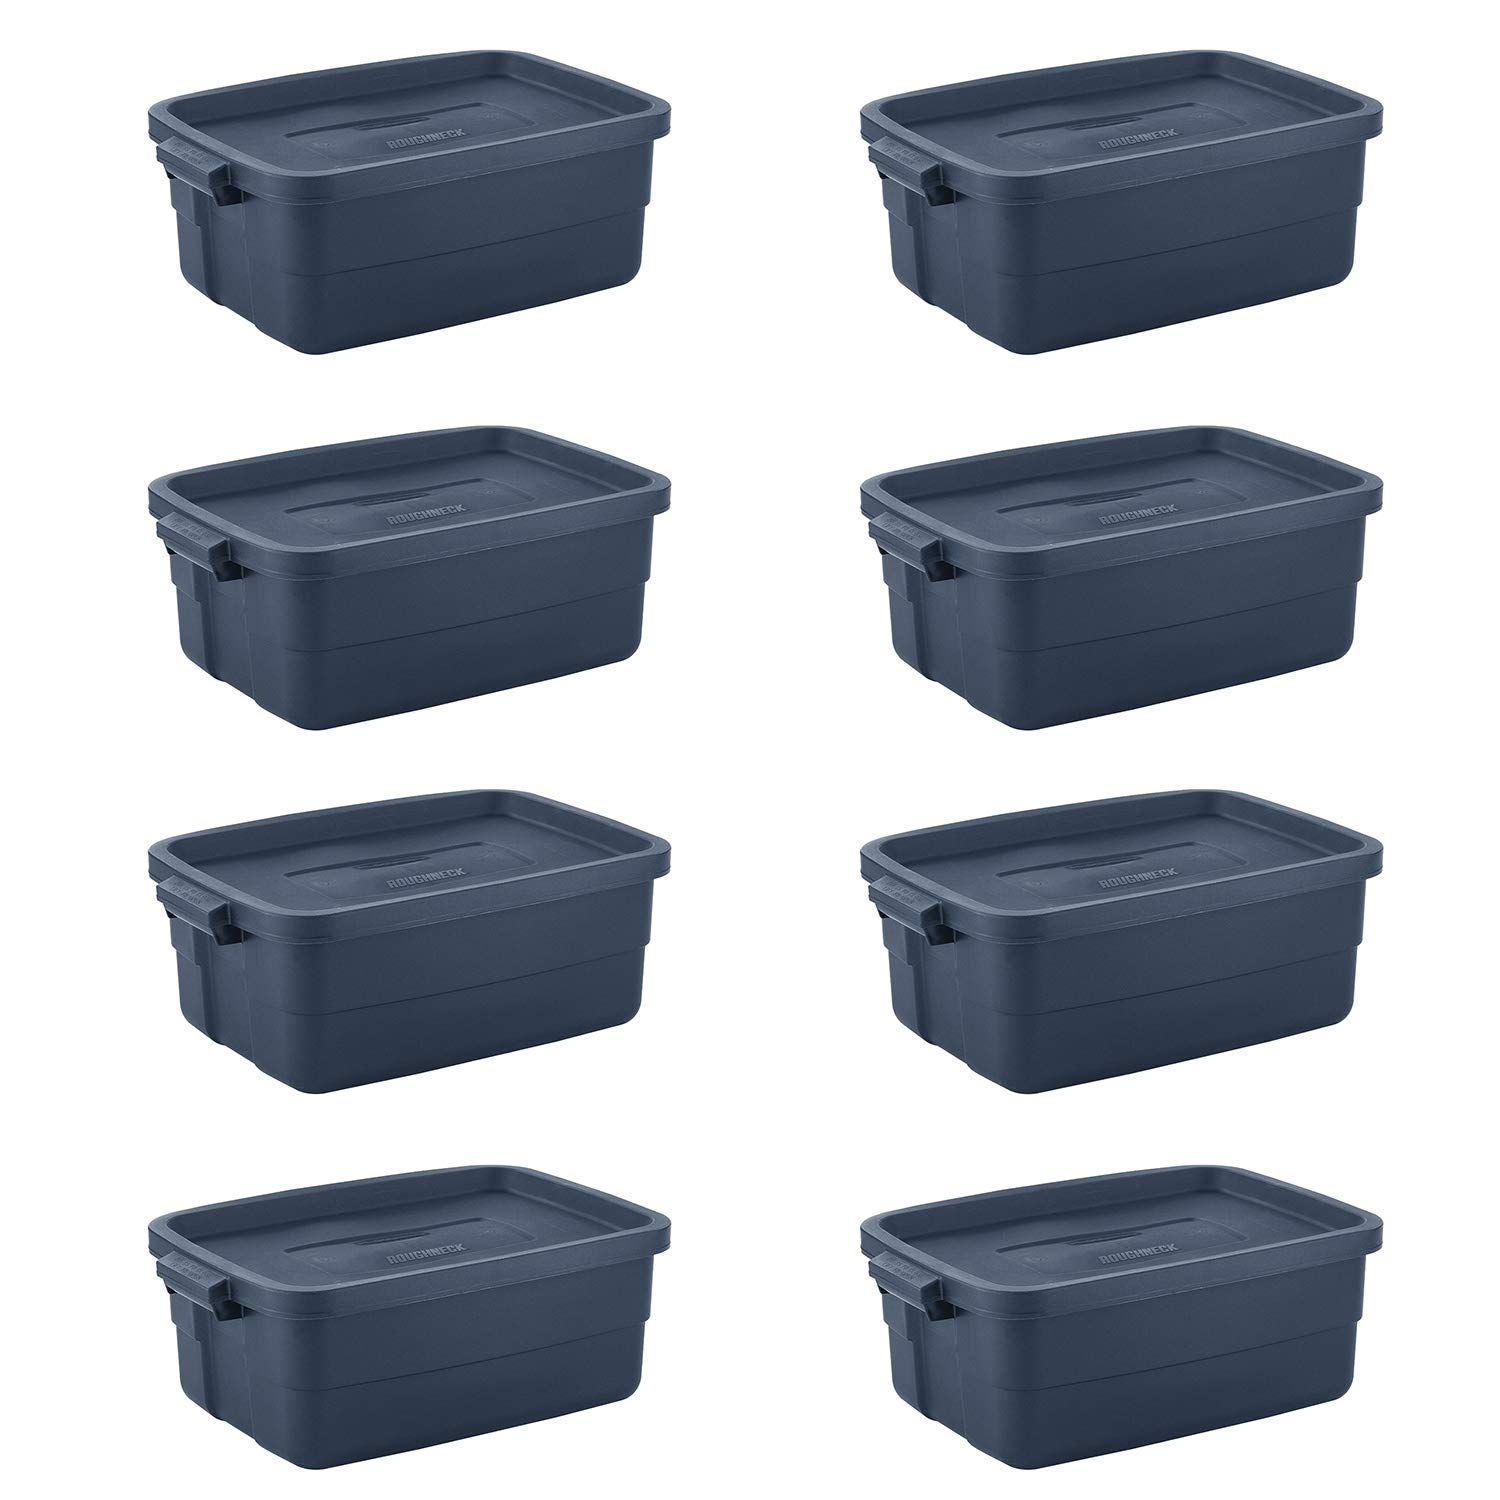 Pin On Baskets Bins And Containers